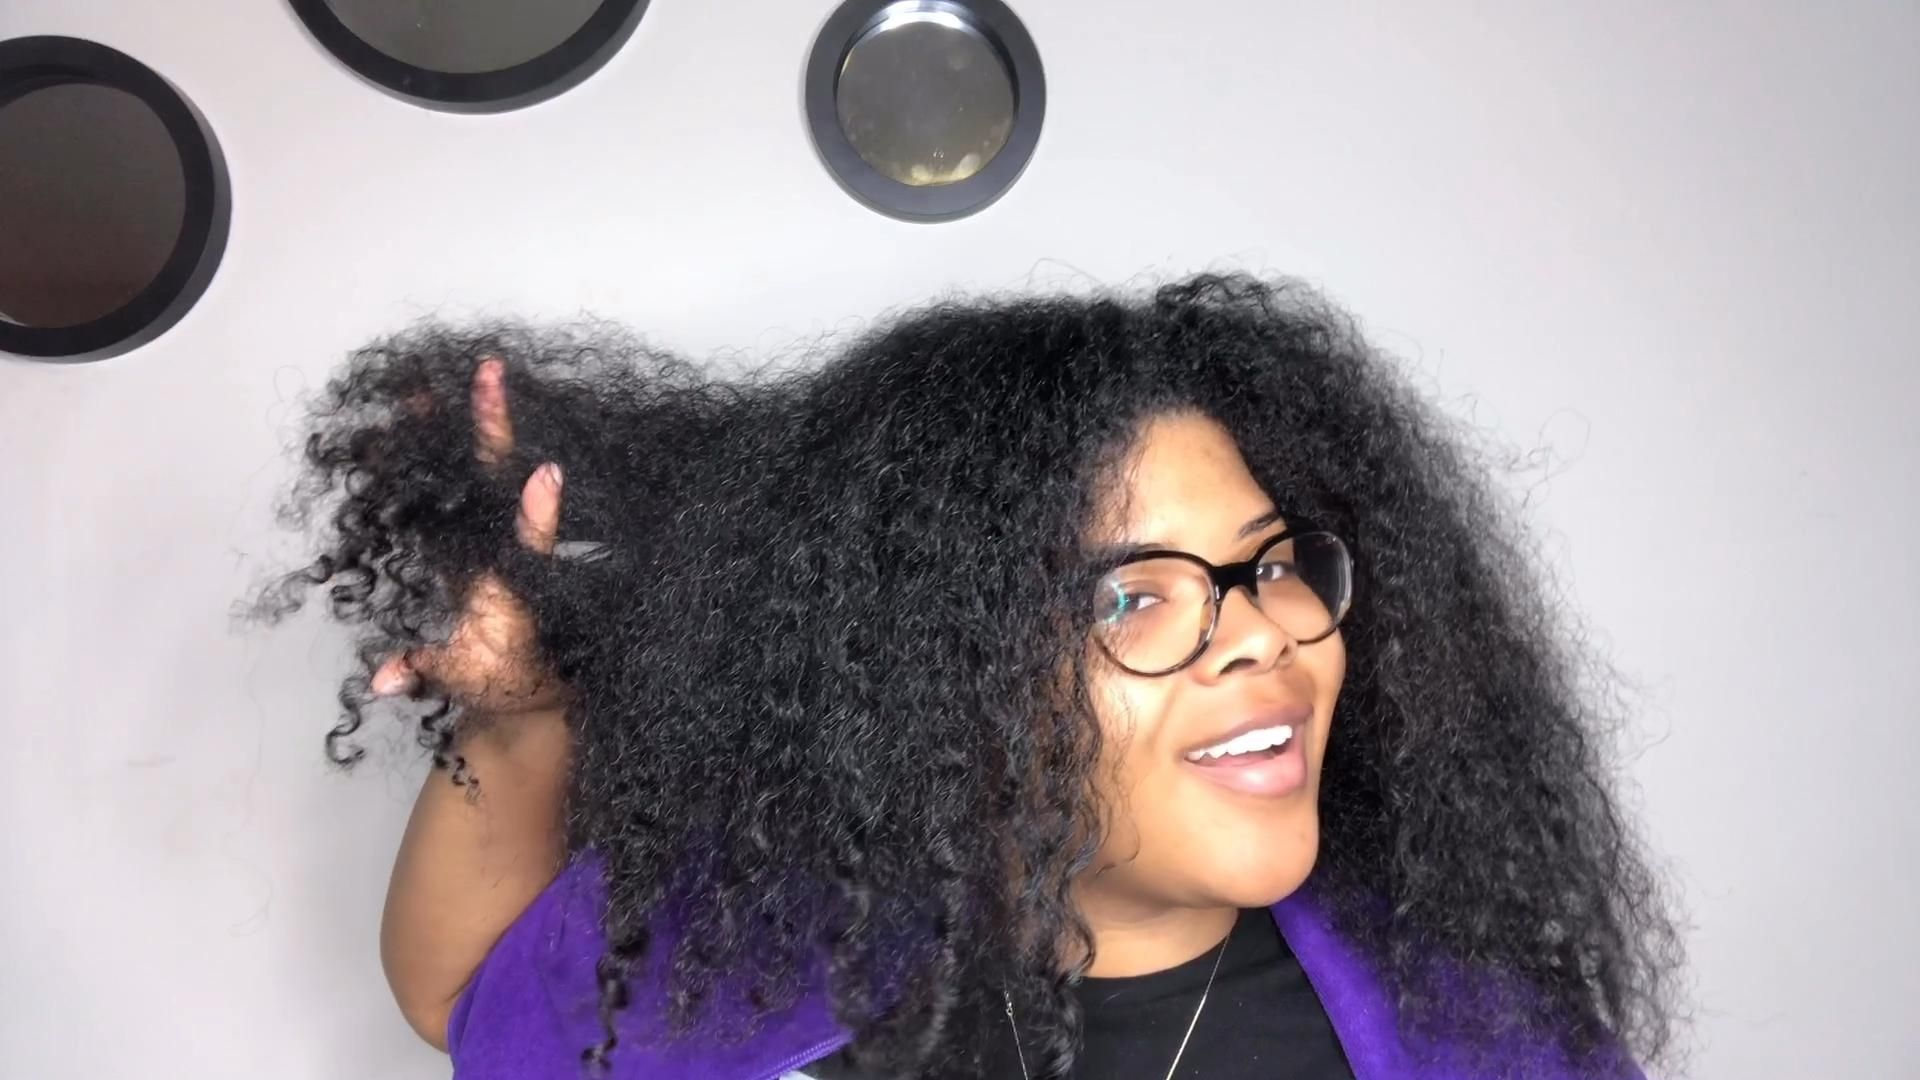 Detangling with a brush and wide tooth comb #detangler #naturalhair #naturalhaircare #naturalremedy #healthyhair #healthyhairjourney #washdayroutine